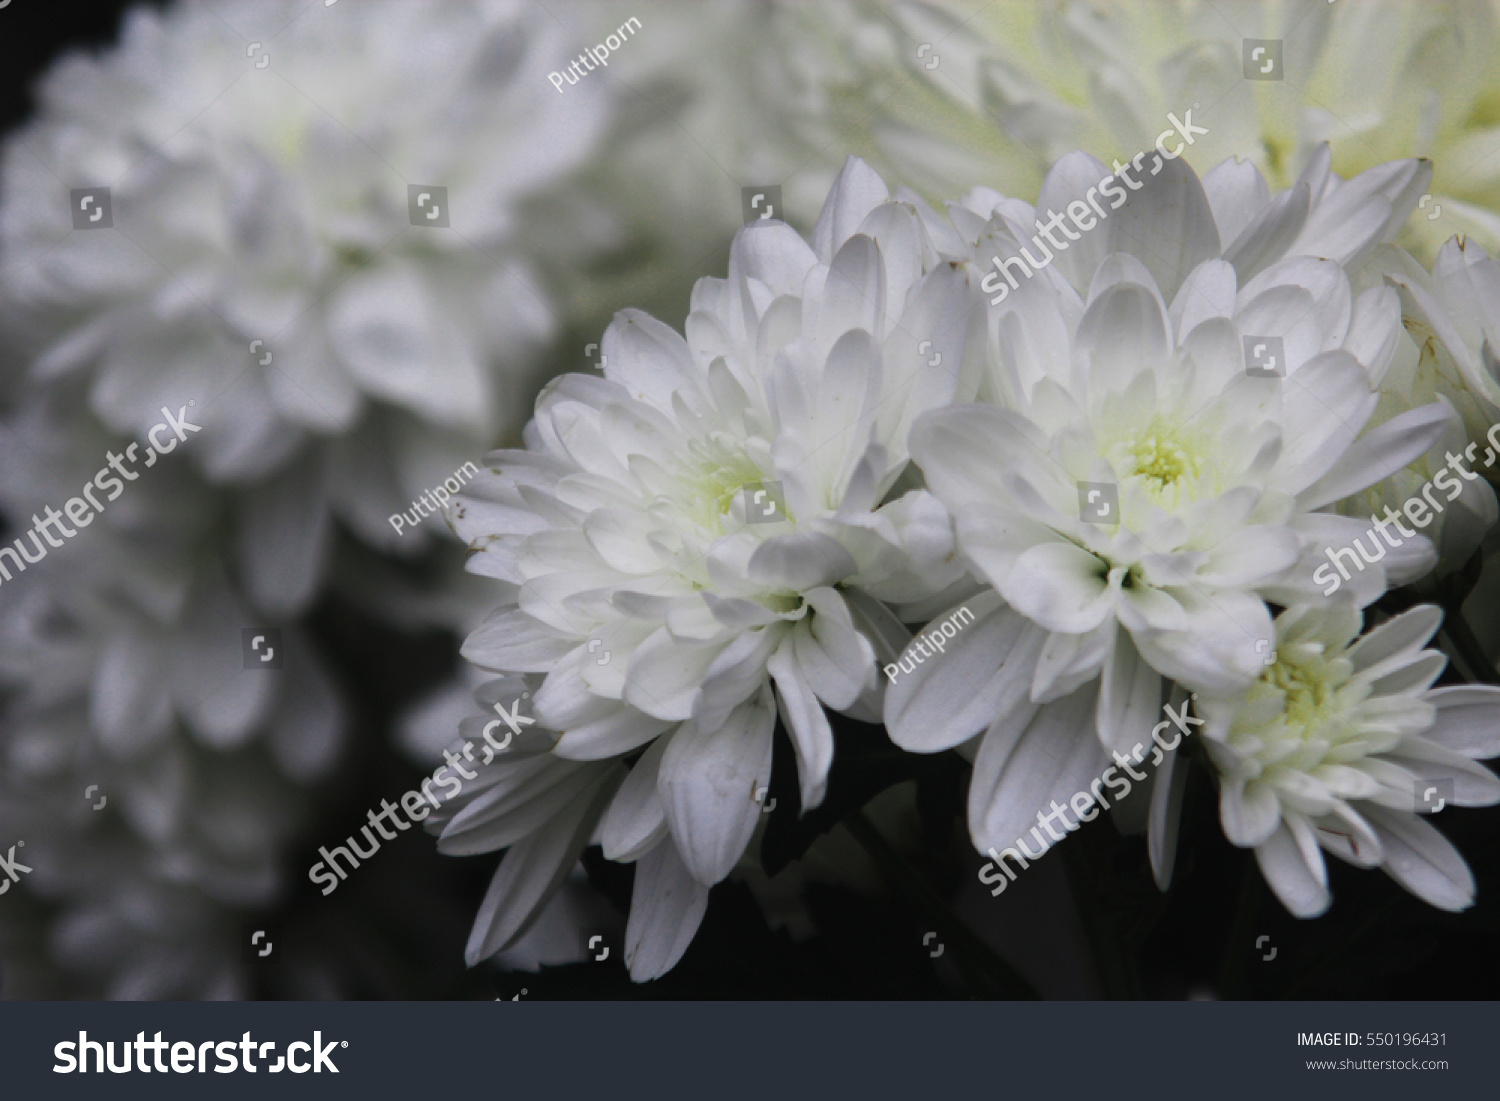 Flowers Are White Flowers With Yellow Stamens Ez Canvas